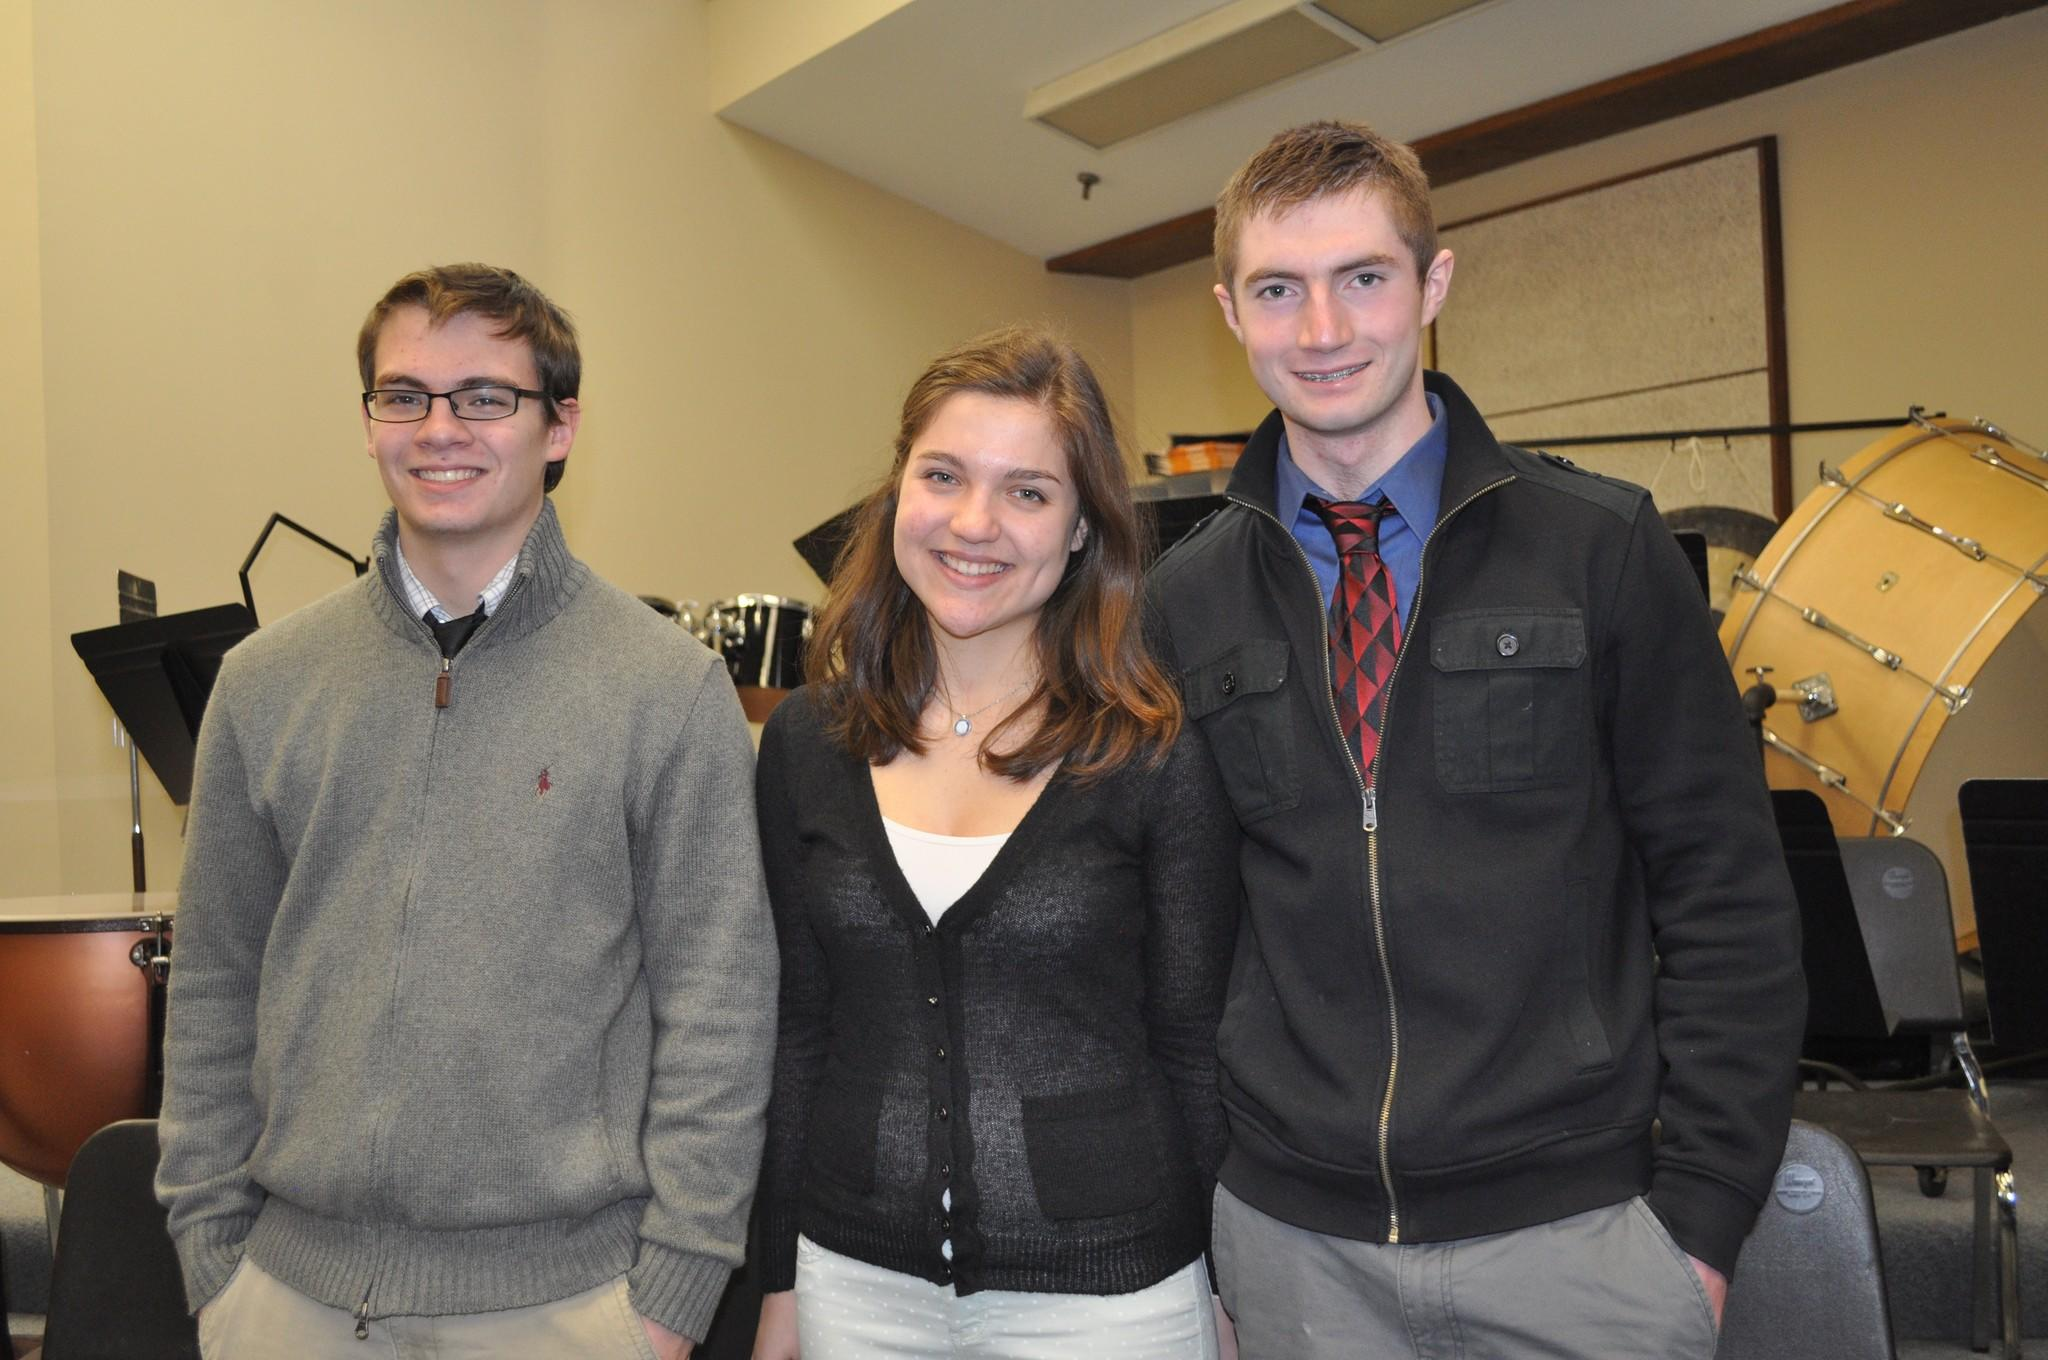 From left to right: Glastonbury residents Nick Giamalis '16 and Lina Volin '15 and West Hartford resident Daniel Melody '15 have been named to the prestigious All State Ensemble by the CT Music Educators Association.